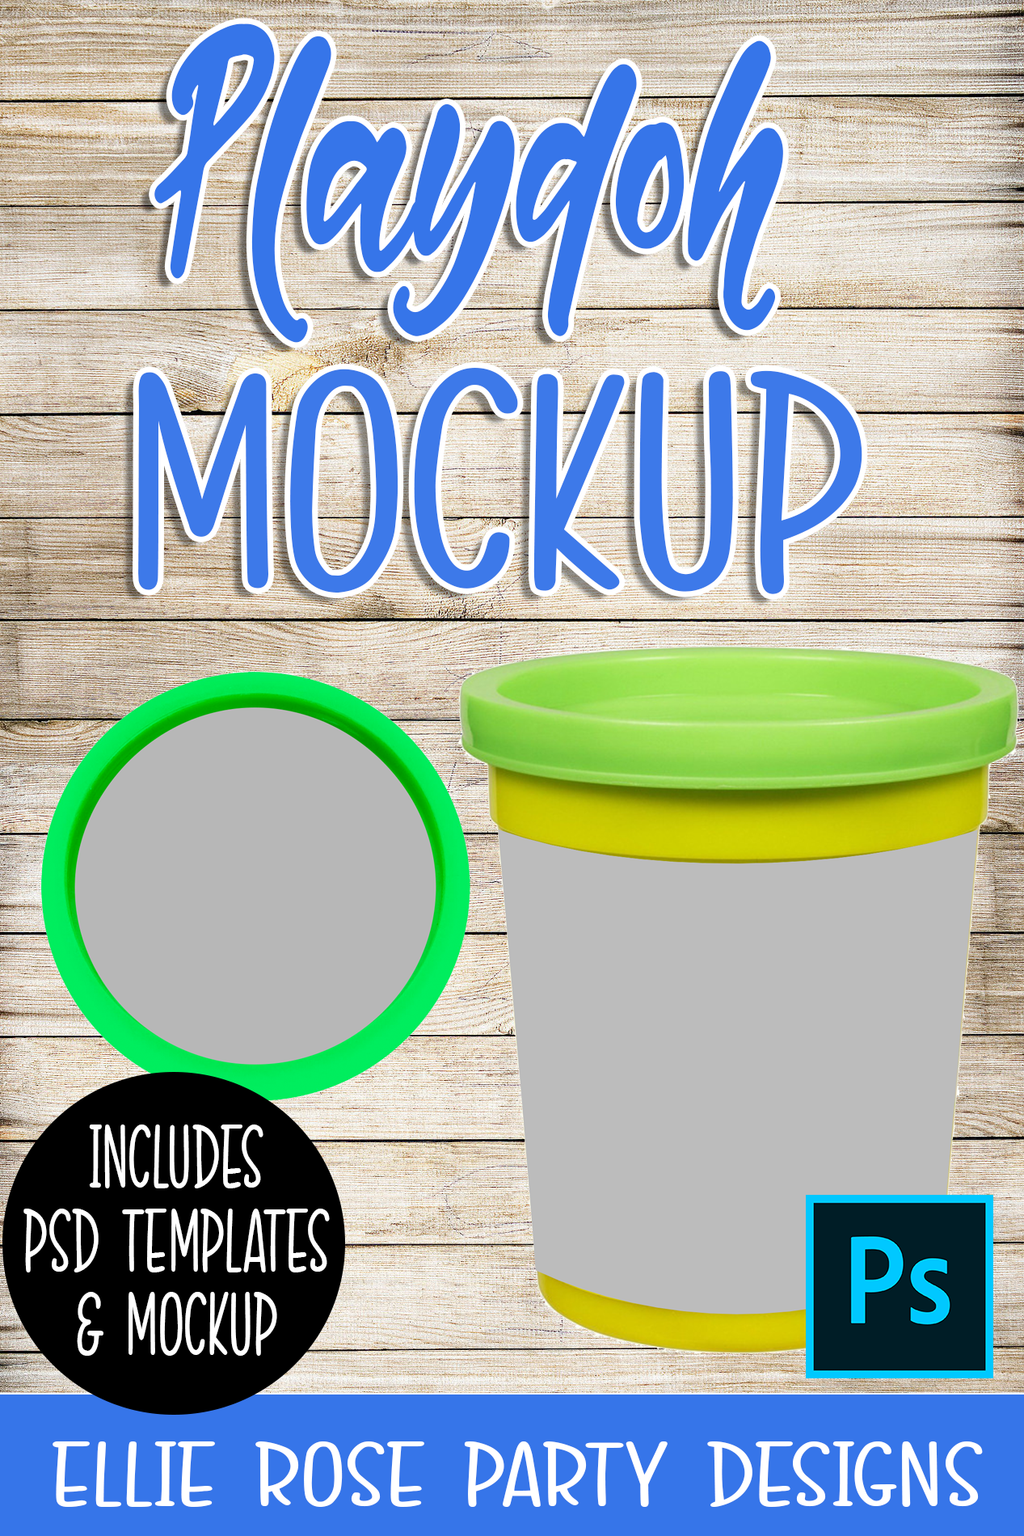 Playdough Playdoh Mockup and Template ** Photoshop Users **